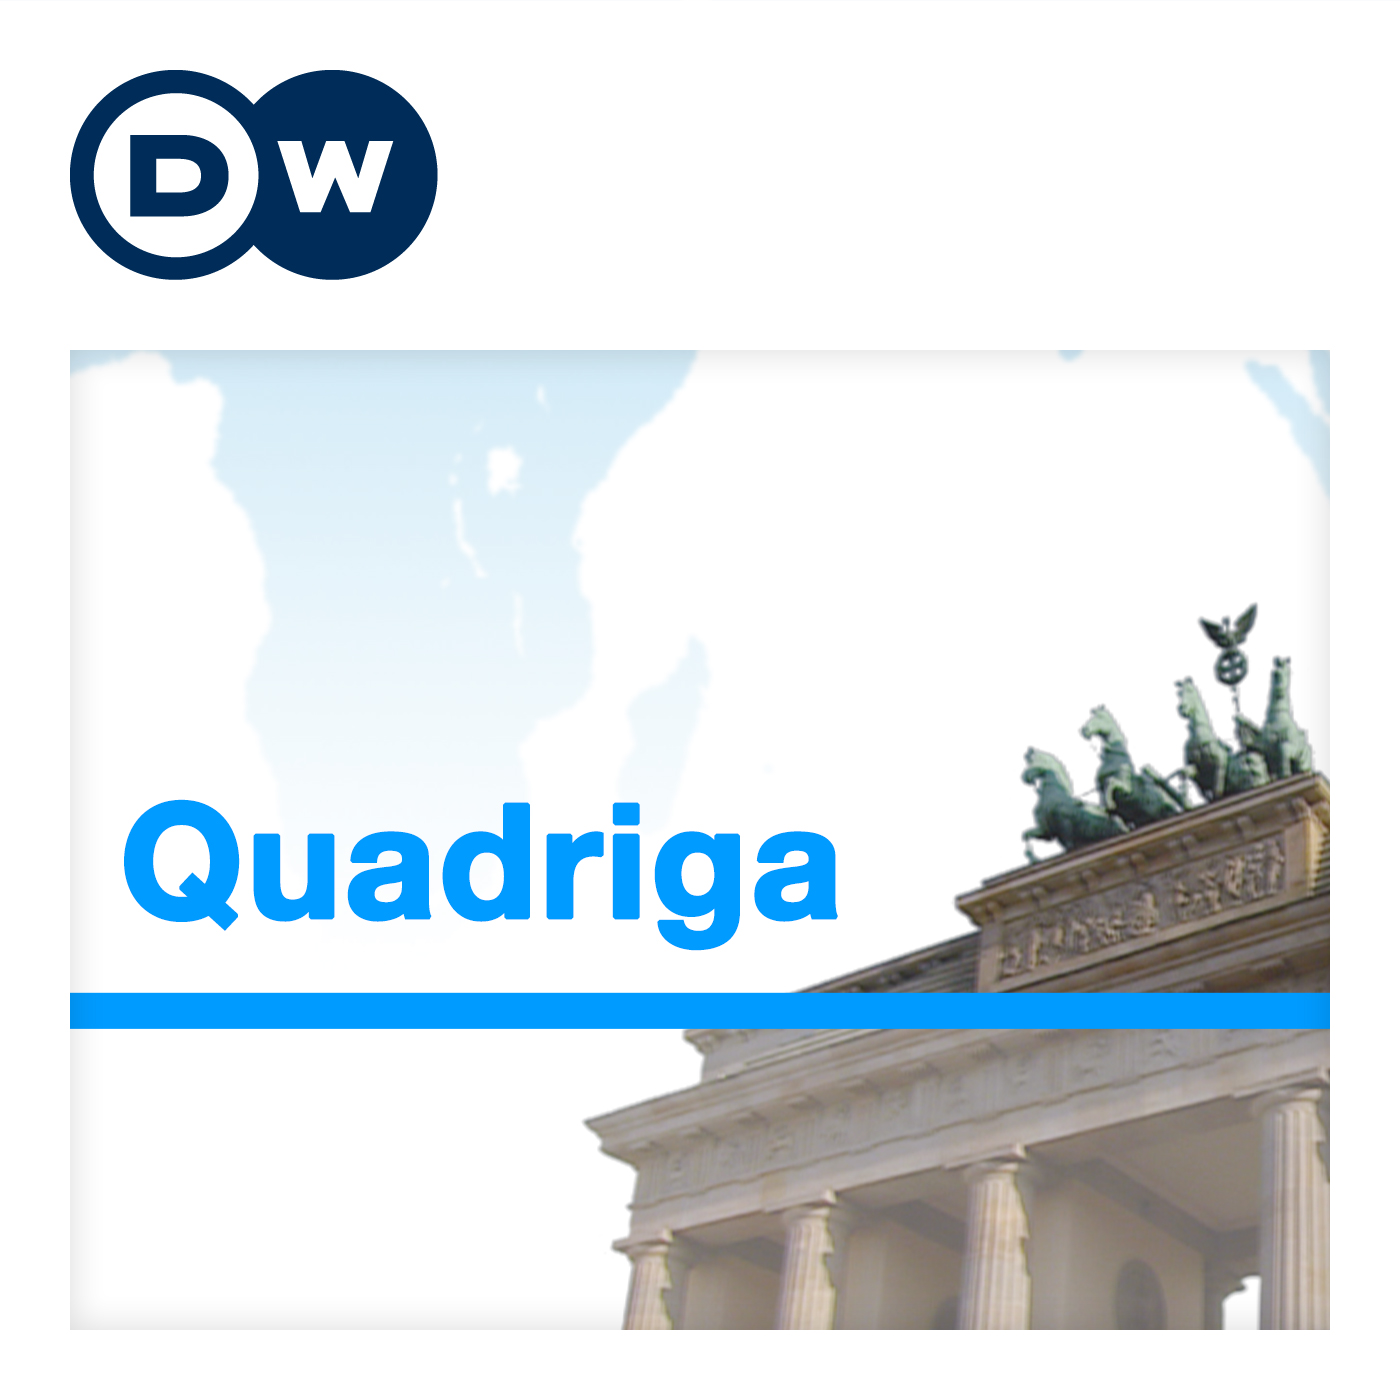 Quadriga: The International Talk Show from Berlin